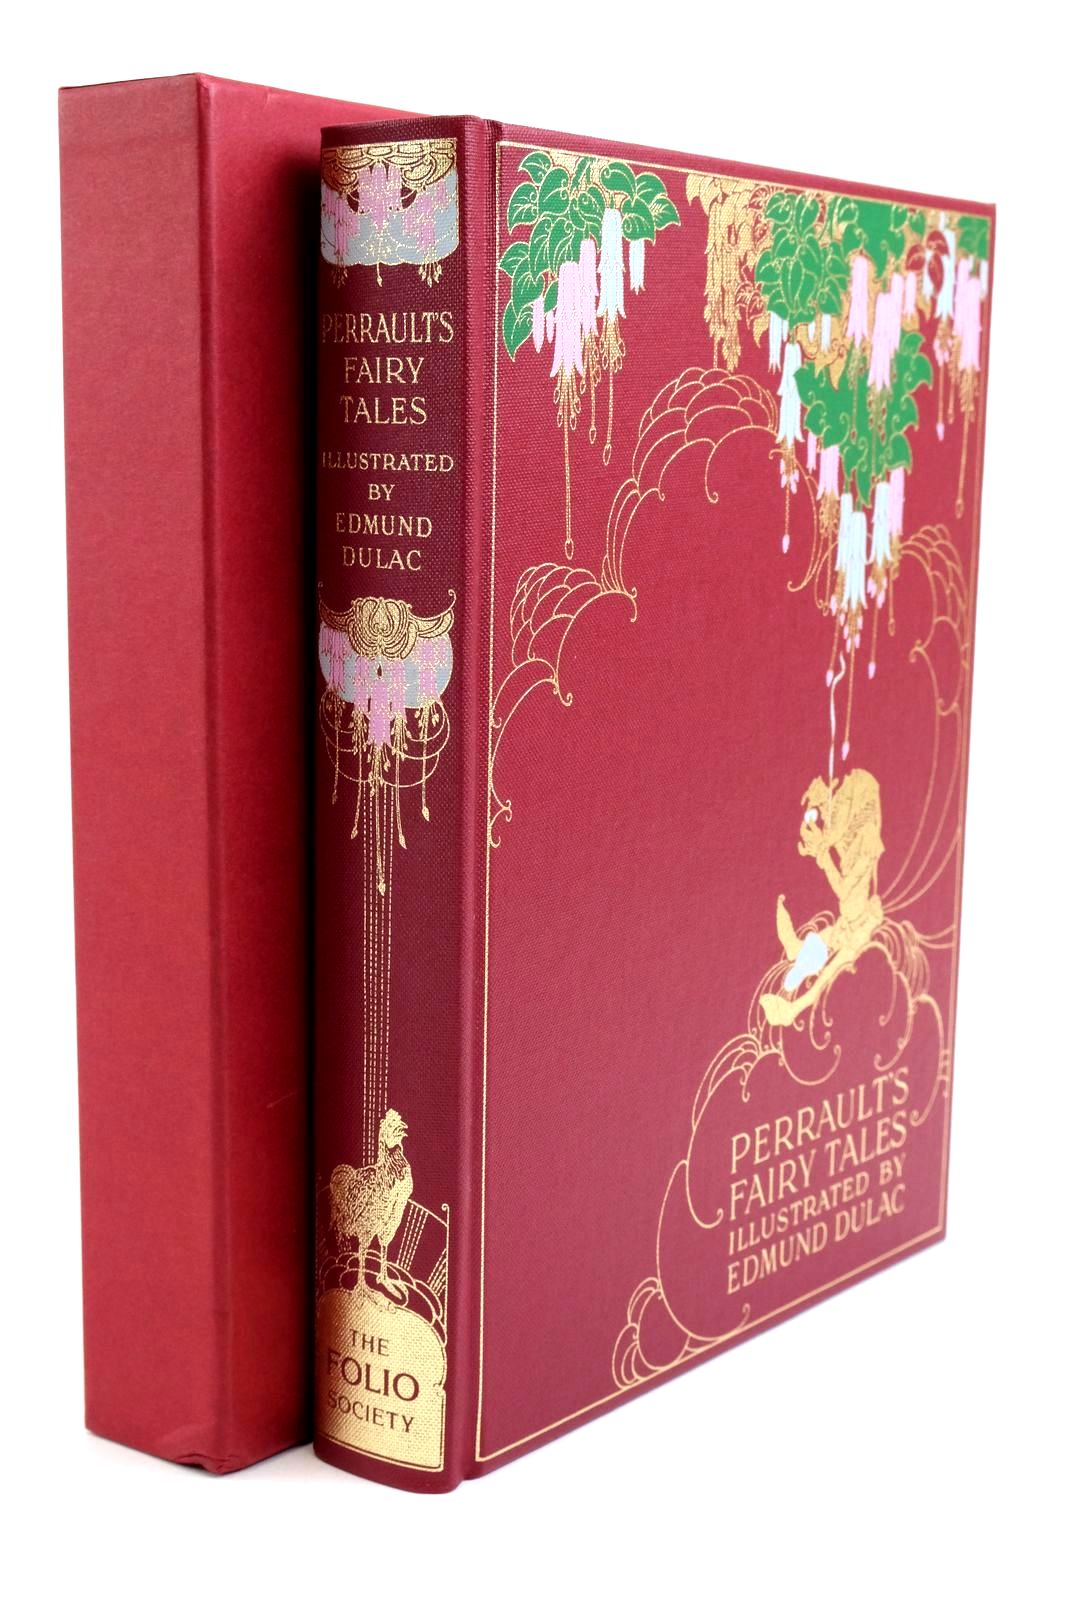 Photo of THE FAIRY TALES OF CHARLES PERRAULT written by Perrault, Charles illustrated by Dulac, Edmund published by Folio Society (STOCK CODE: 1321761)  for sale by Stella & Rose's Books